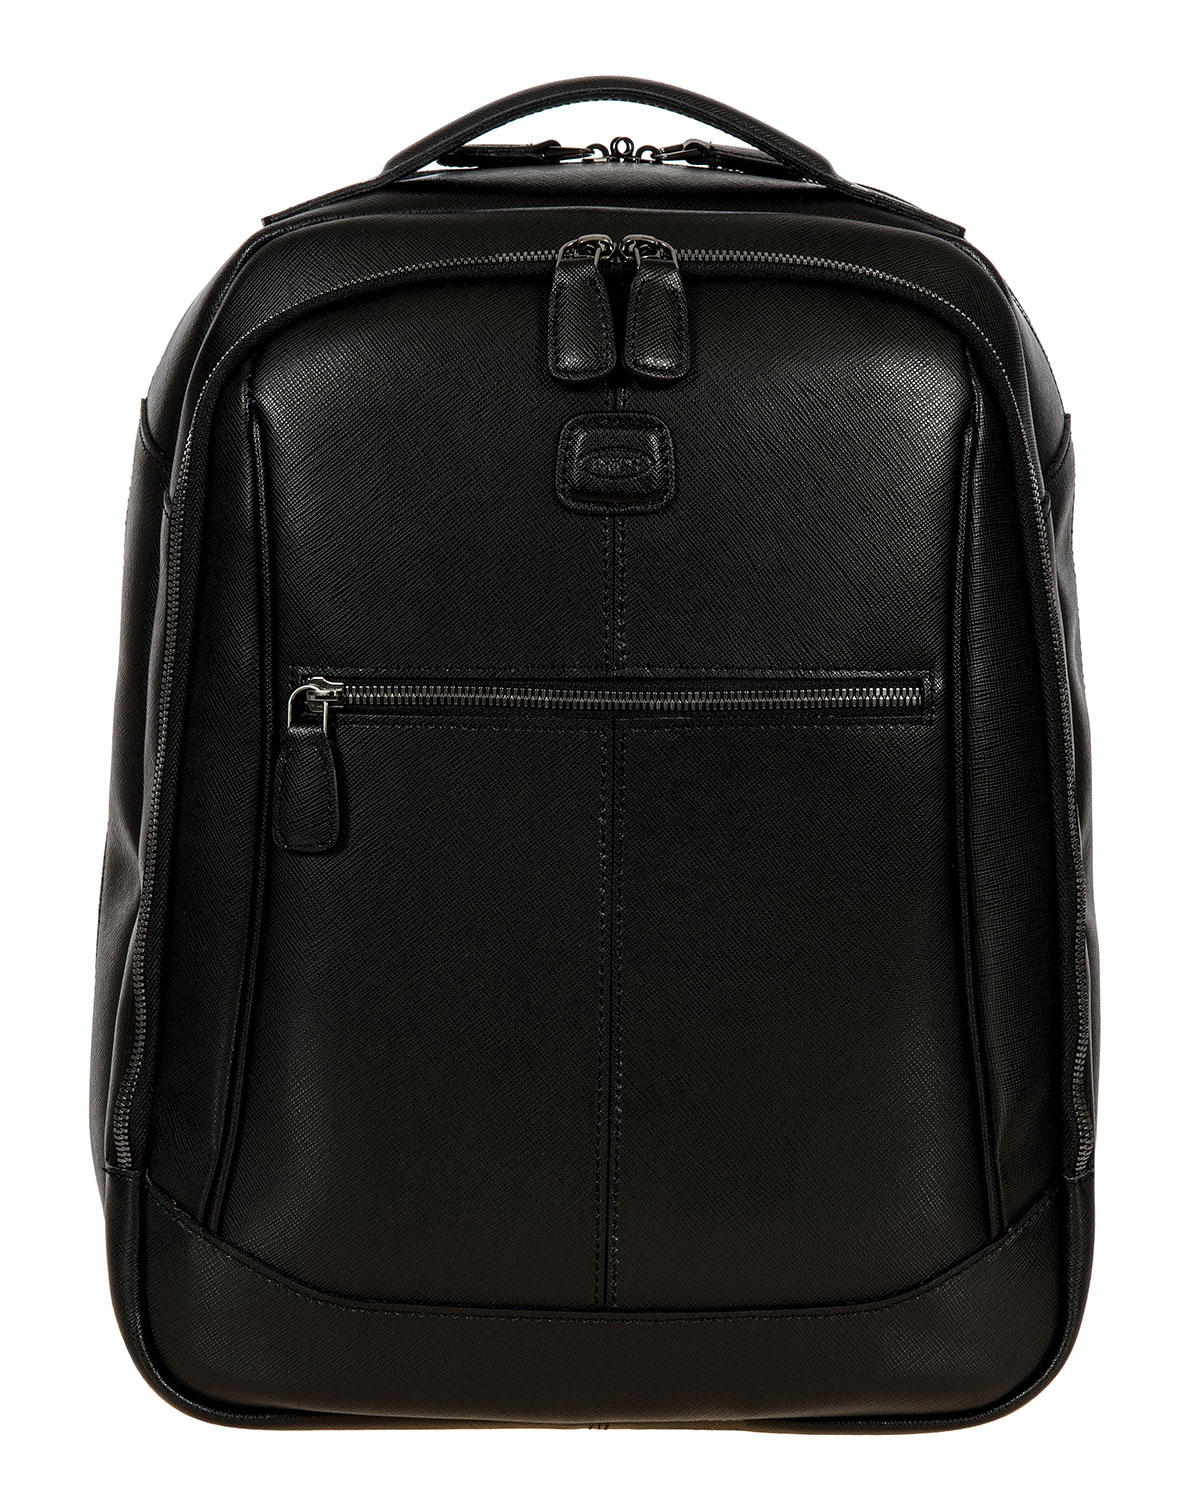 Varese Director Medium Backpack